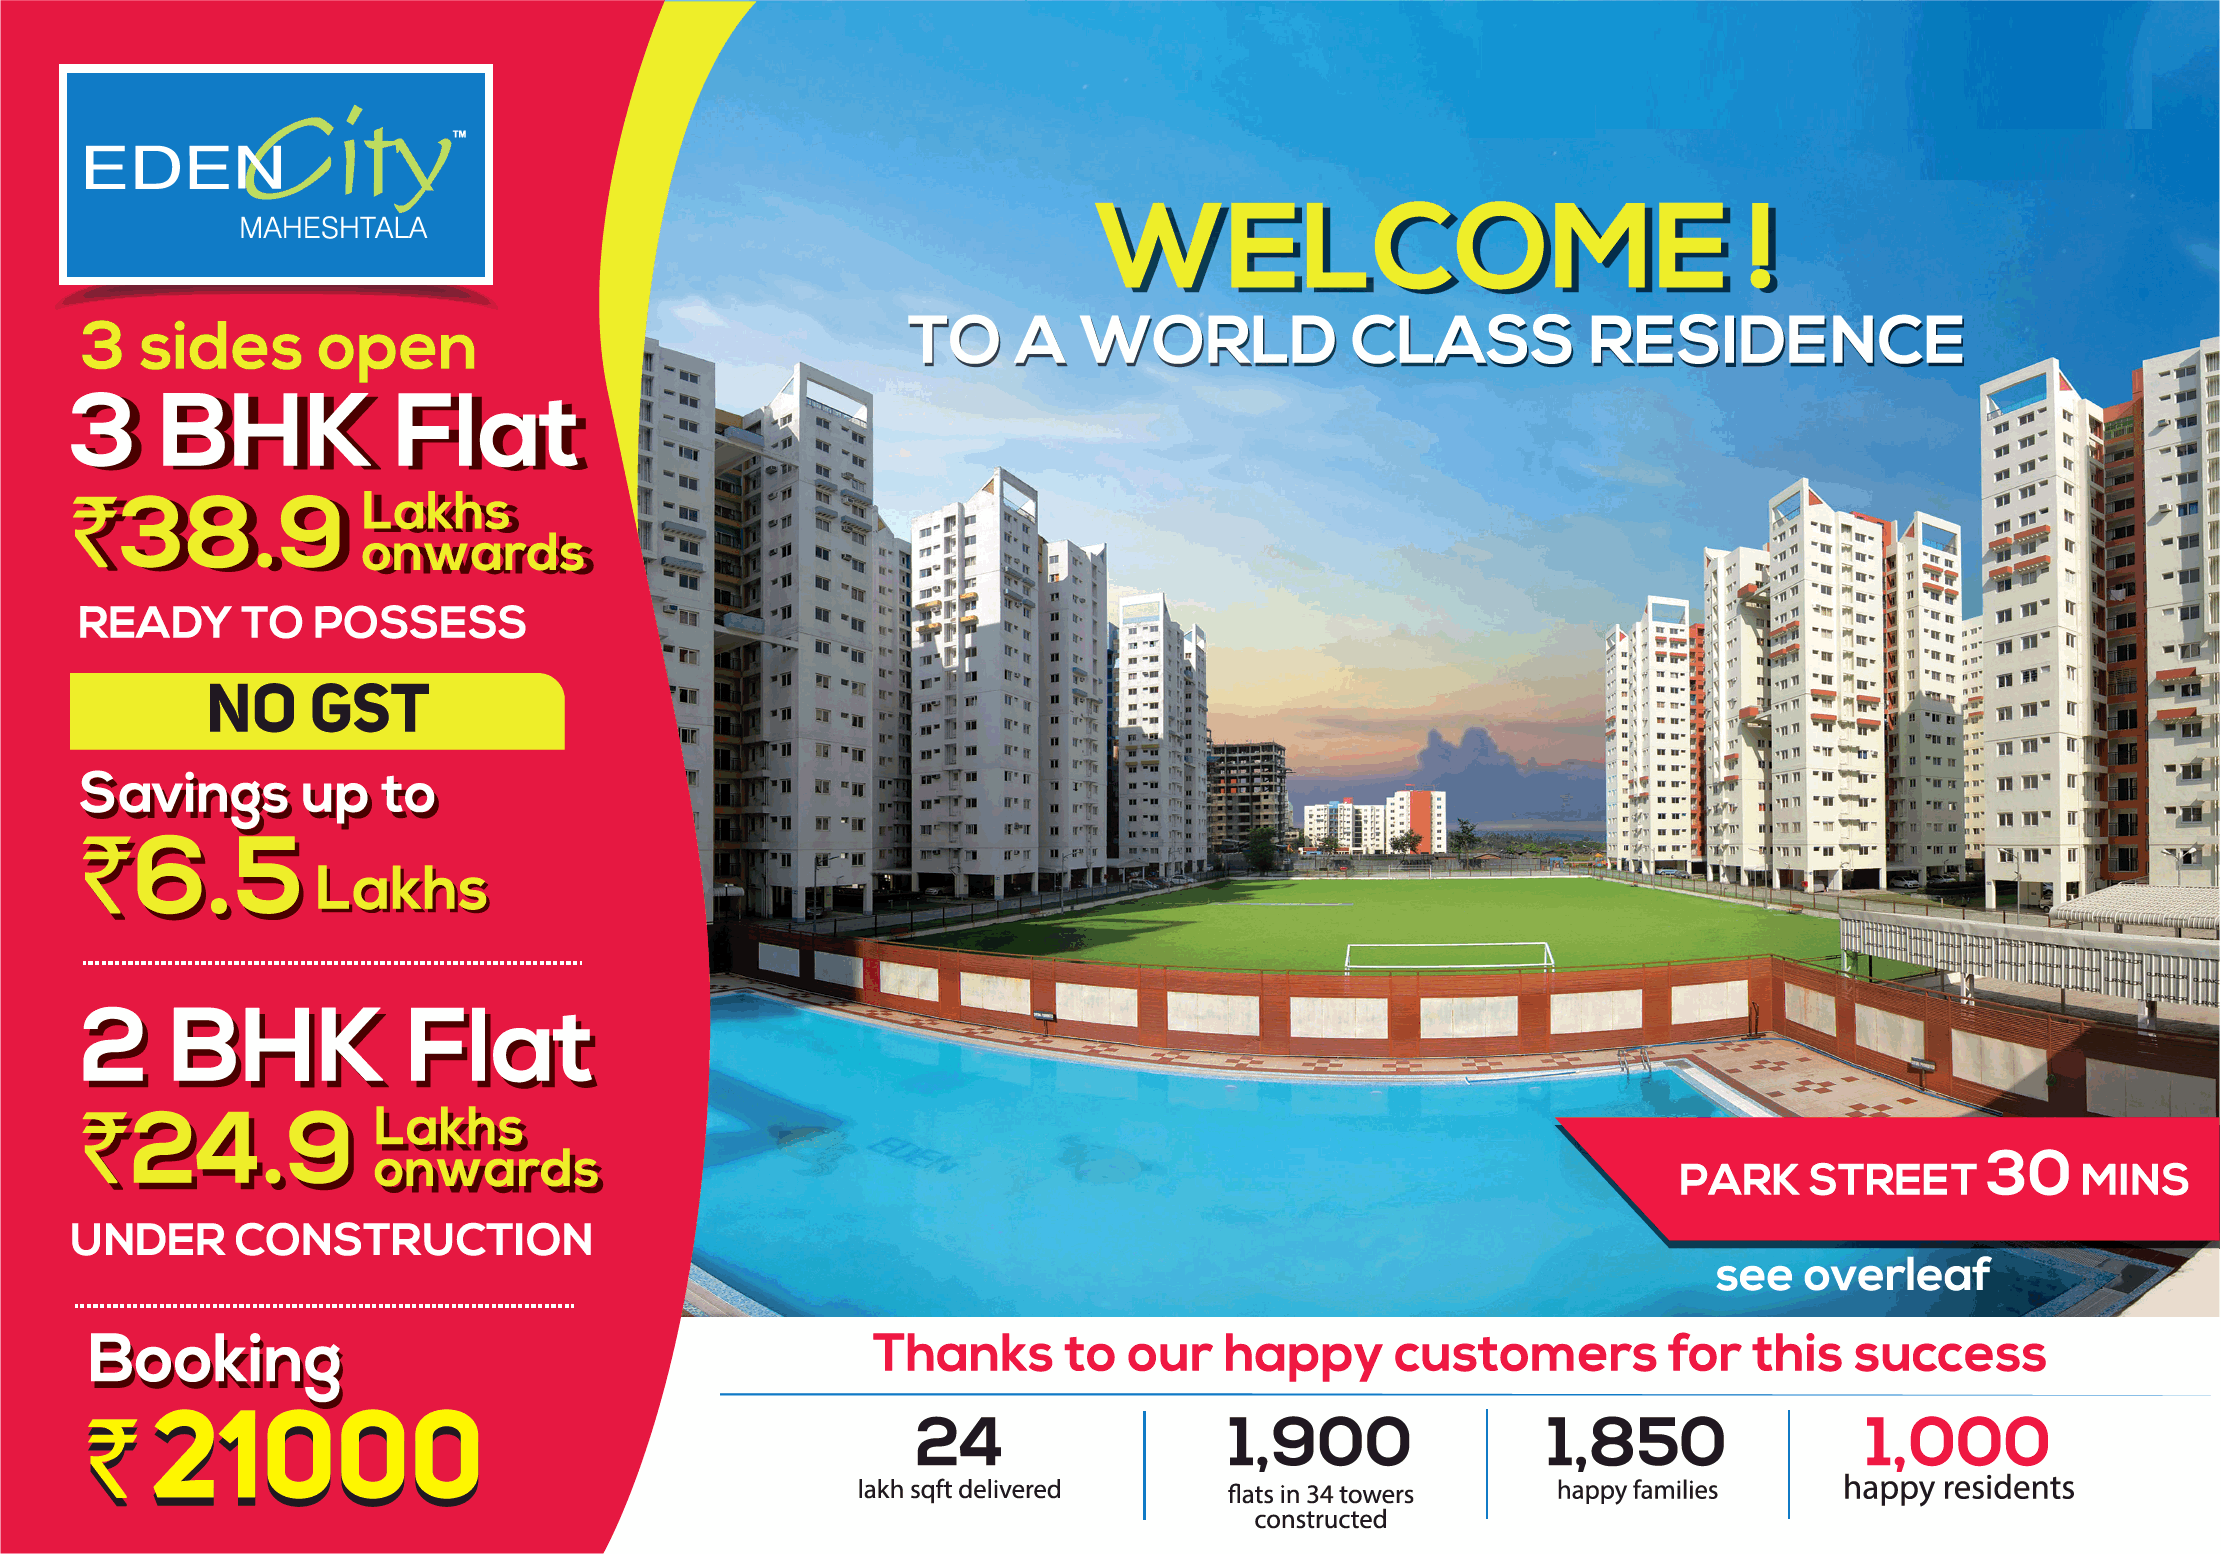 Book 2 3 bhk world class residences at Eden City Maheshtala in Kolkata